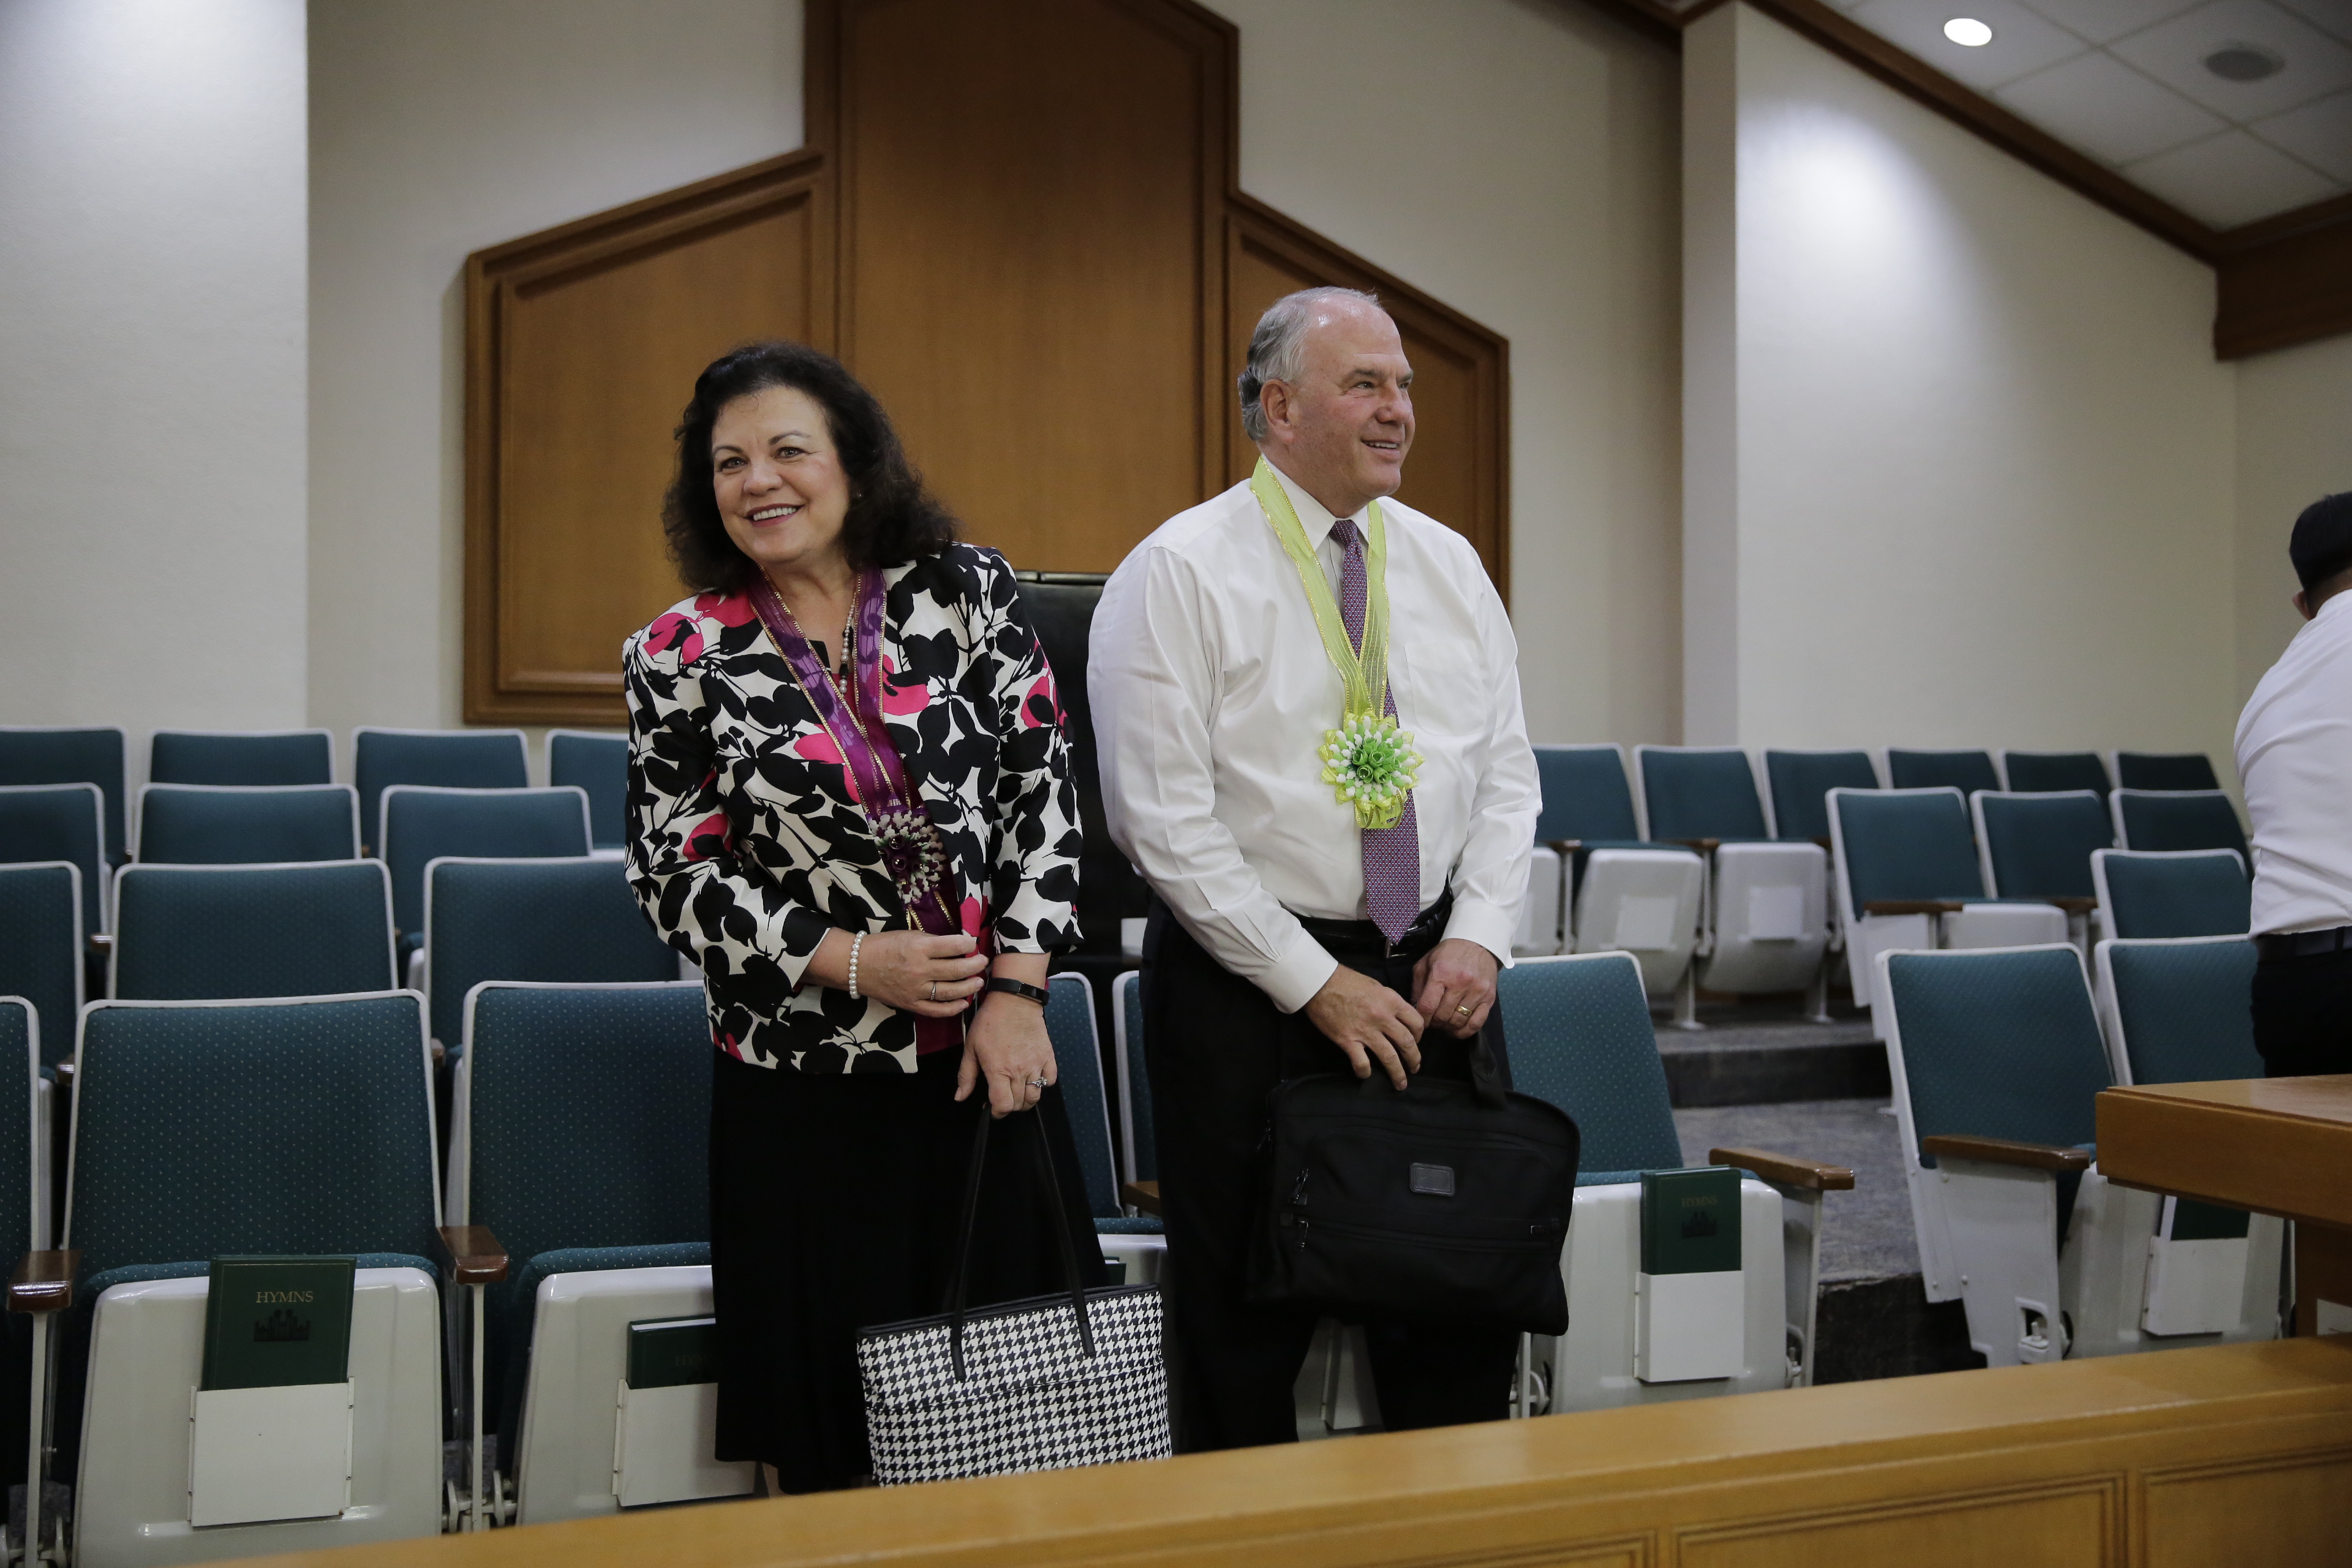 Elder Ronald A. Rasband and his wife, Sister Melanie Rasband speak to Filipino Latter-day Saint during their Feb. 13 through Feb. 26, 2018, trip to the Church's Philippines Area.